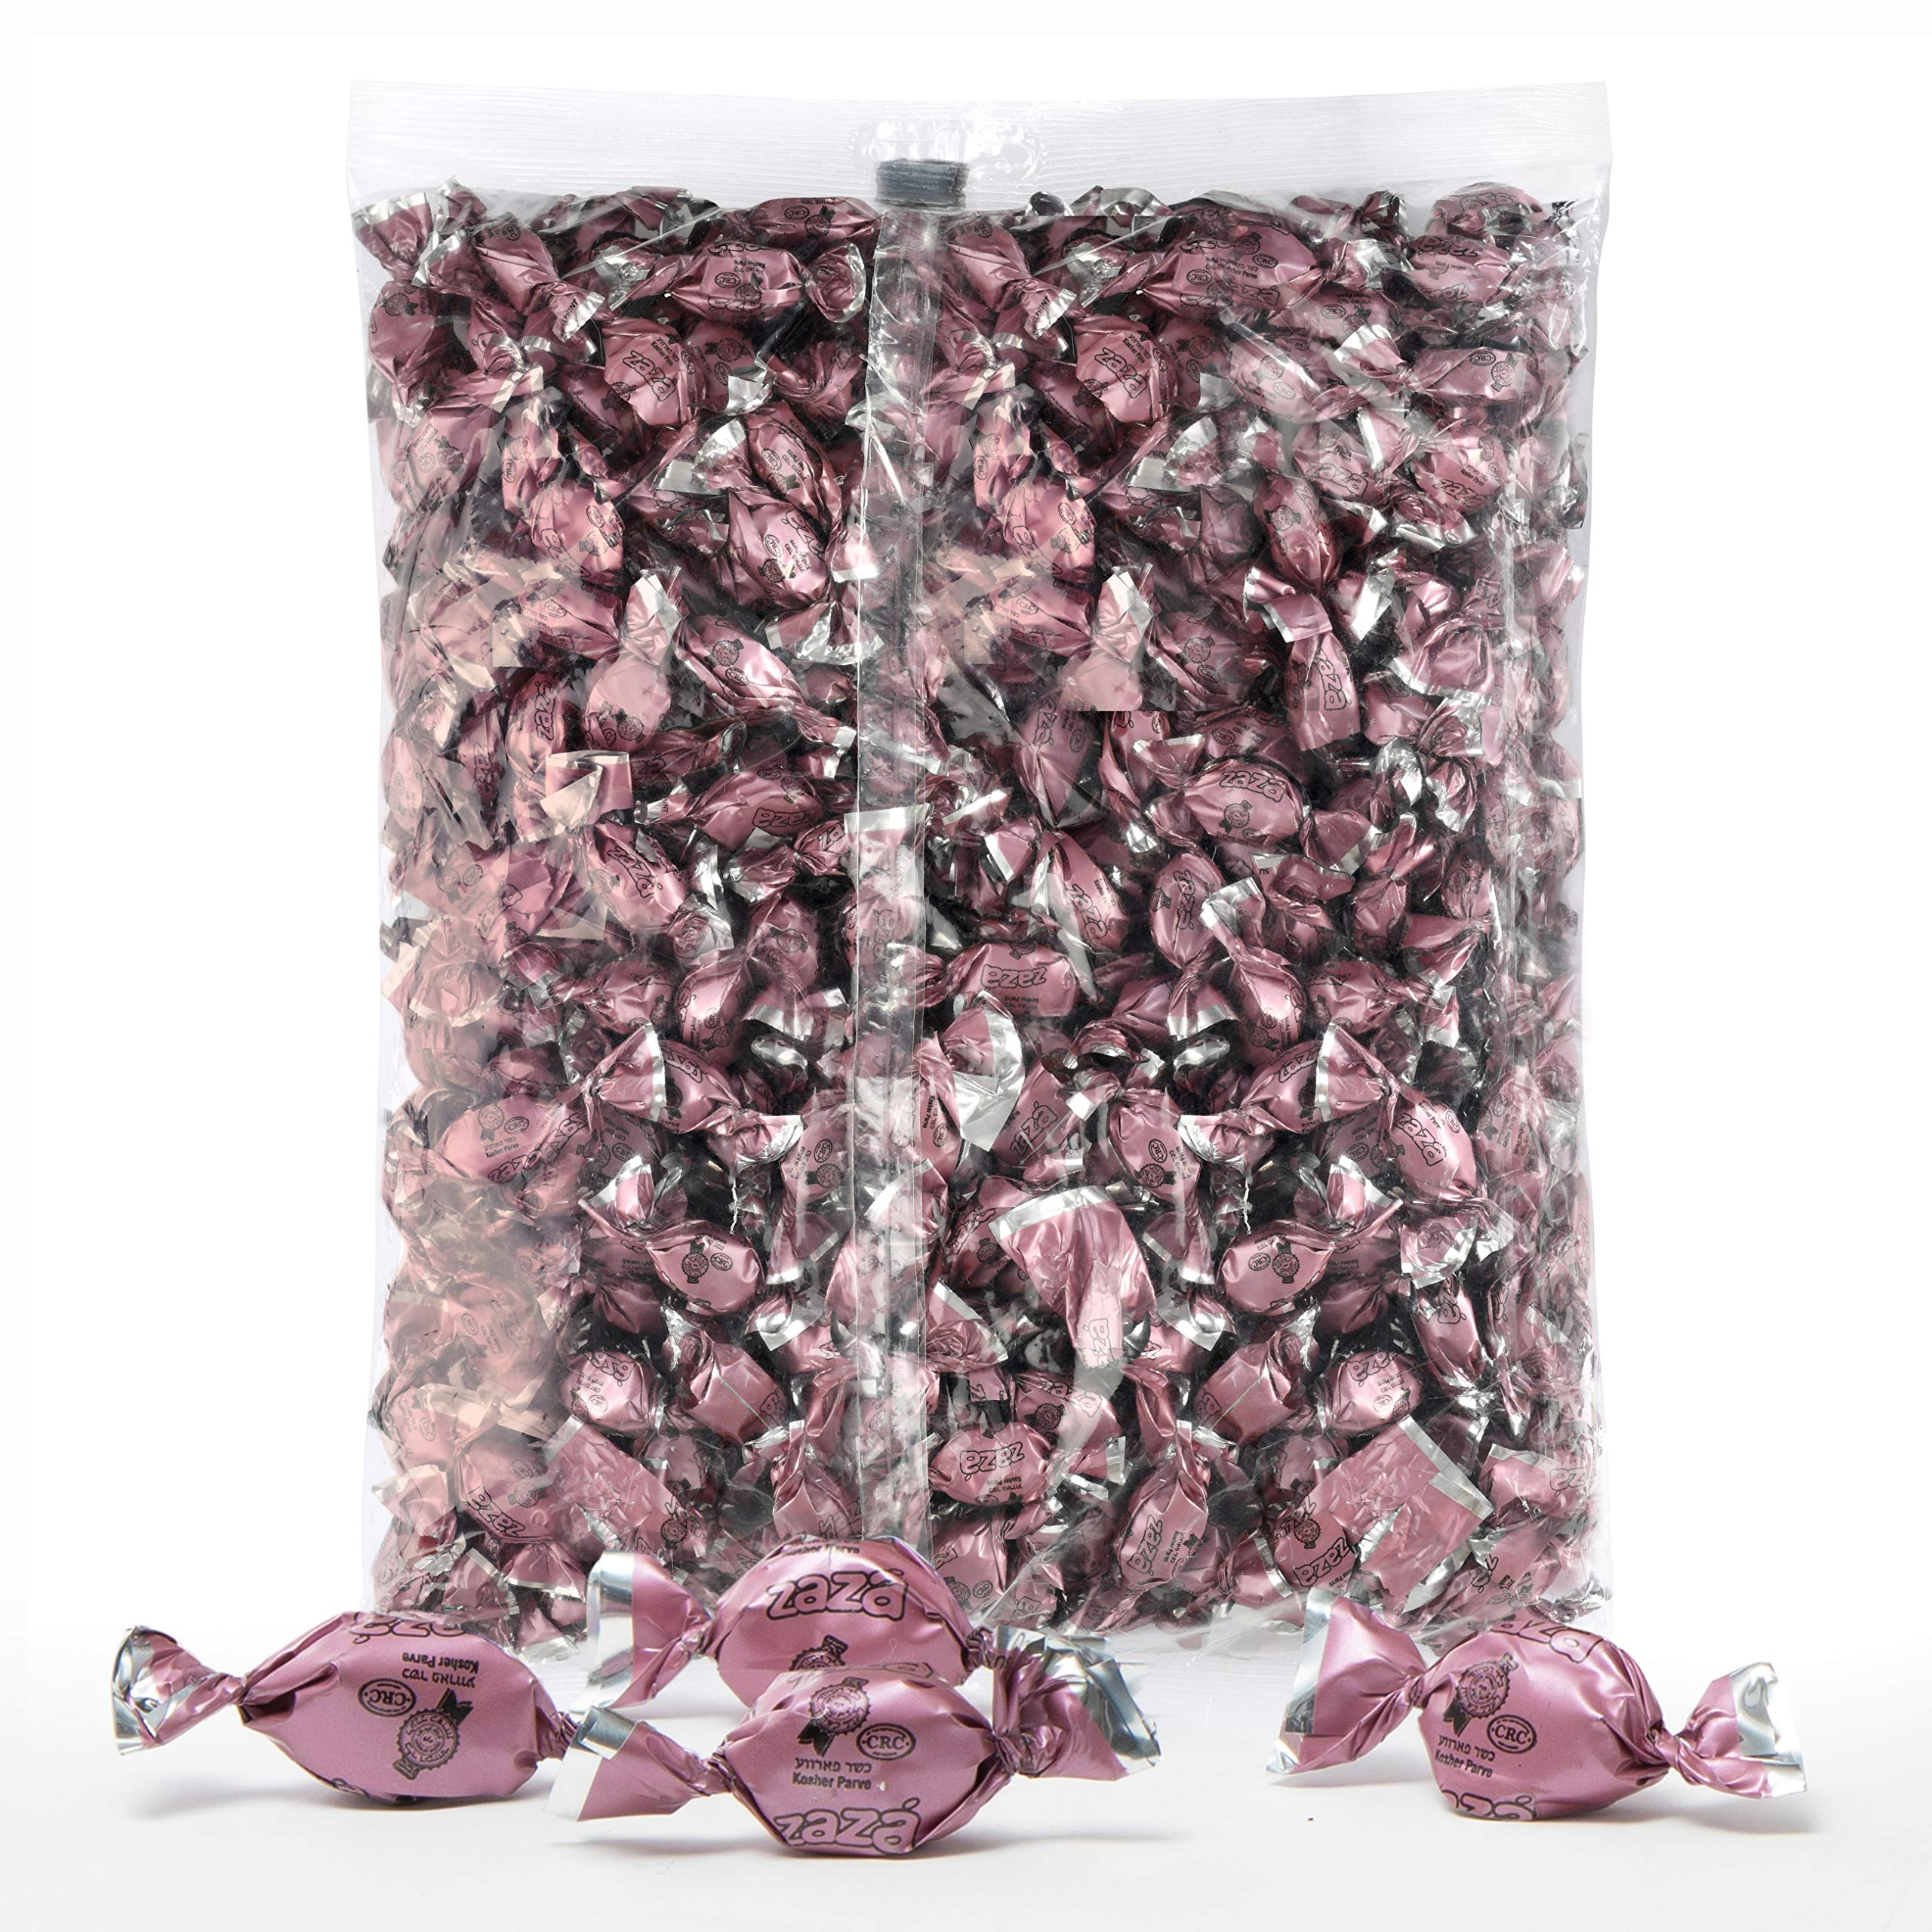 Pink Foils Hard Candy, 1.32 Pounds Bag of Pink Color Themed Kosher Mini Candies Individually Wrapped Strawberry Fruit-Filled Flavored Candy (NET WT 600g, About 310 Pieces)